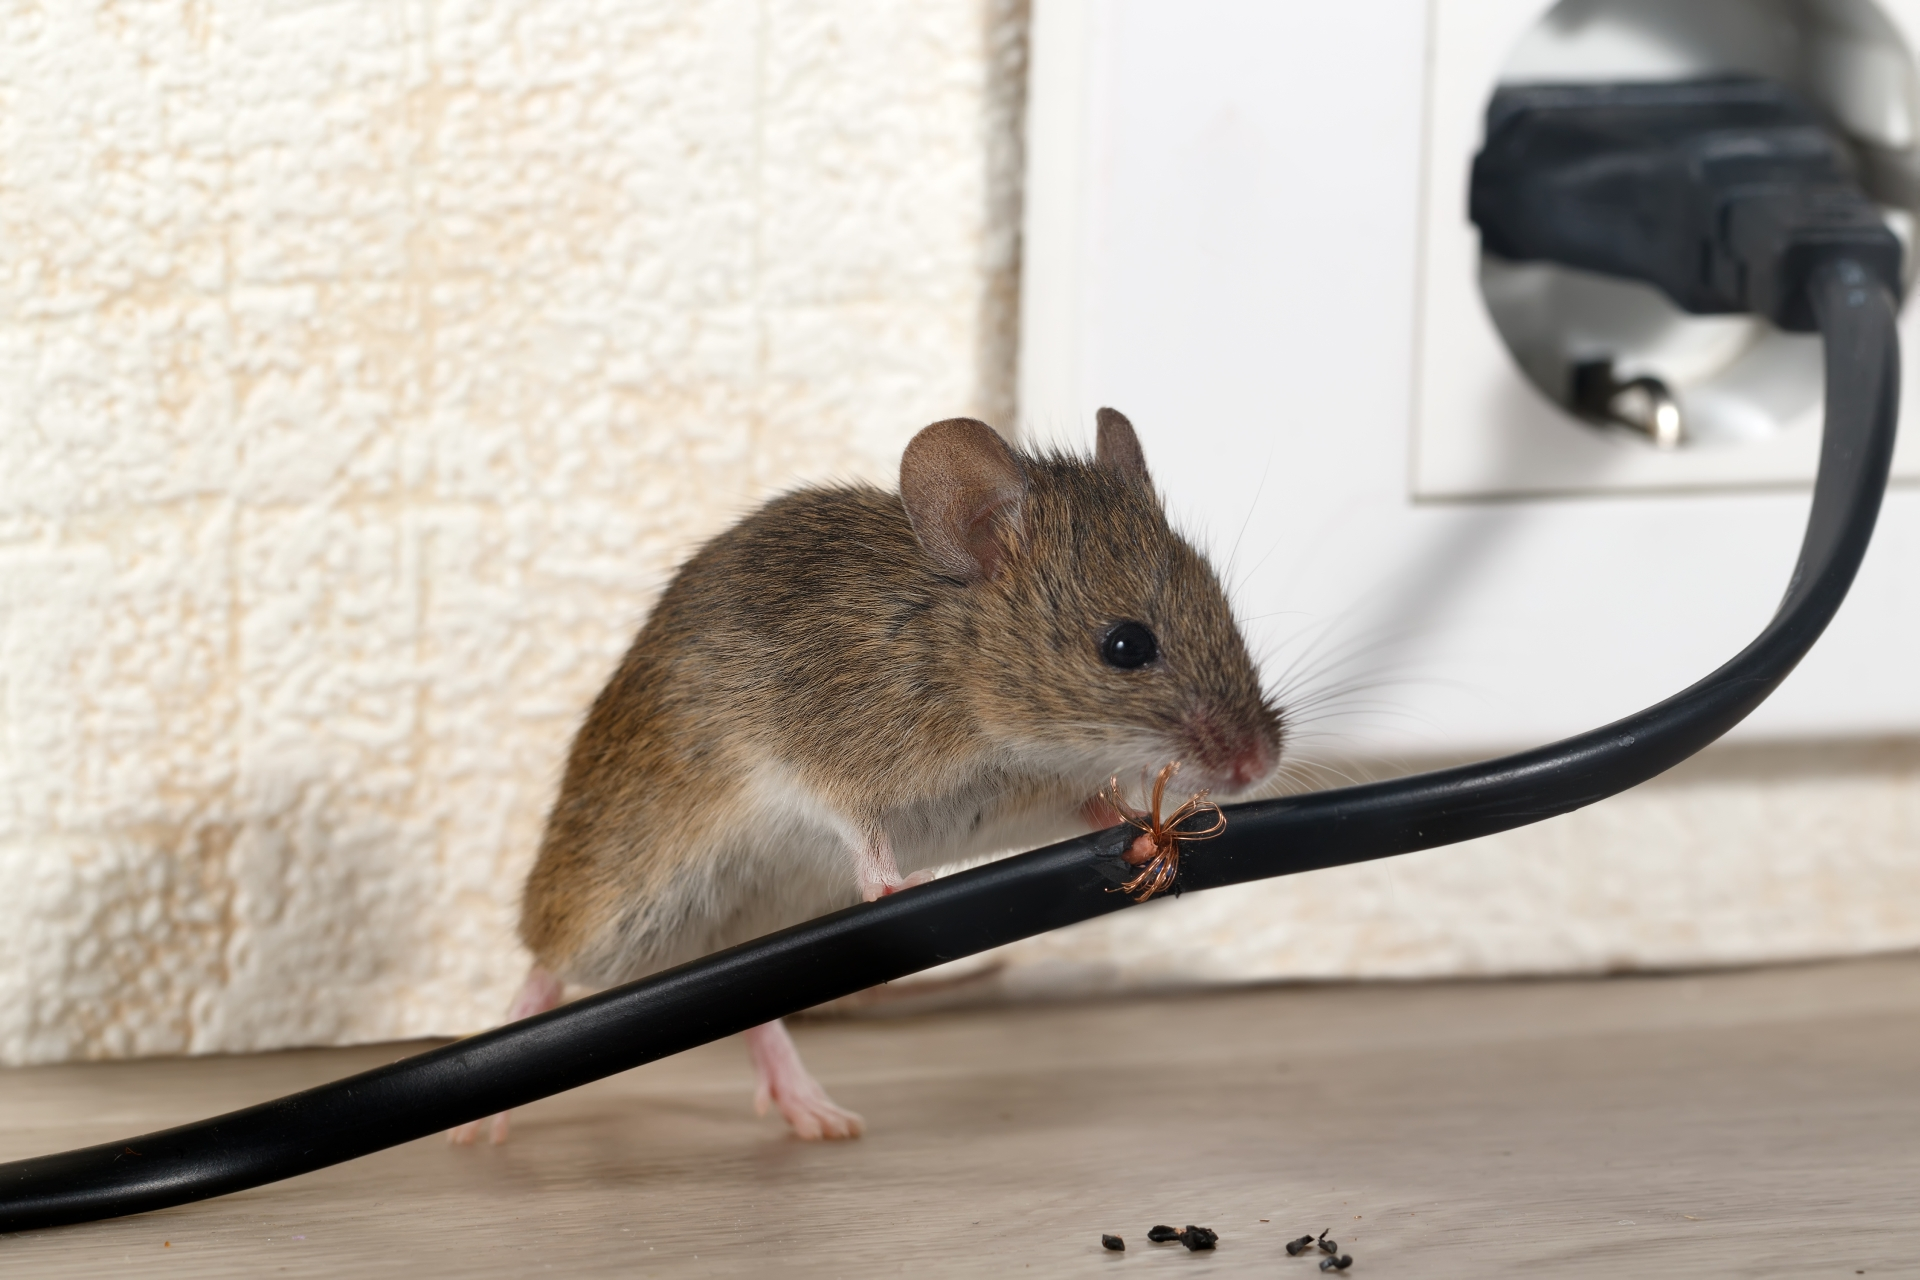 Mice Infestation, Pest Control in Thamesmead, SE28. Call Now 020 8166 9746